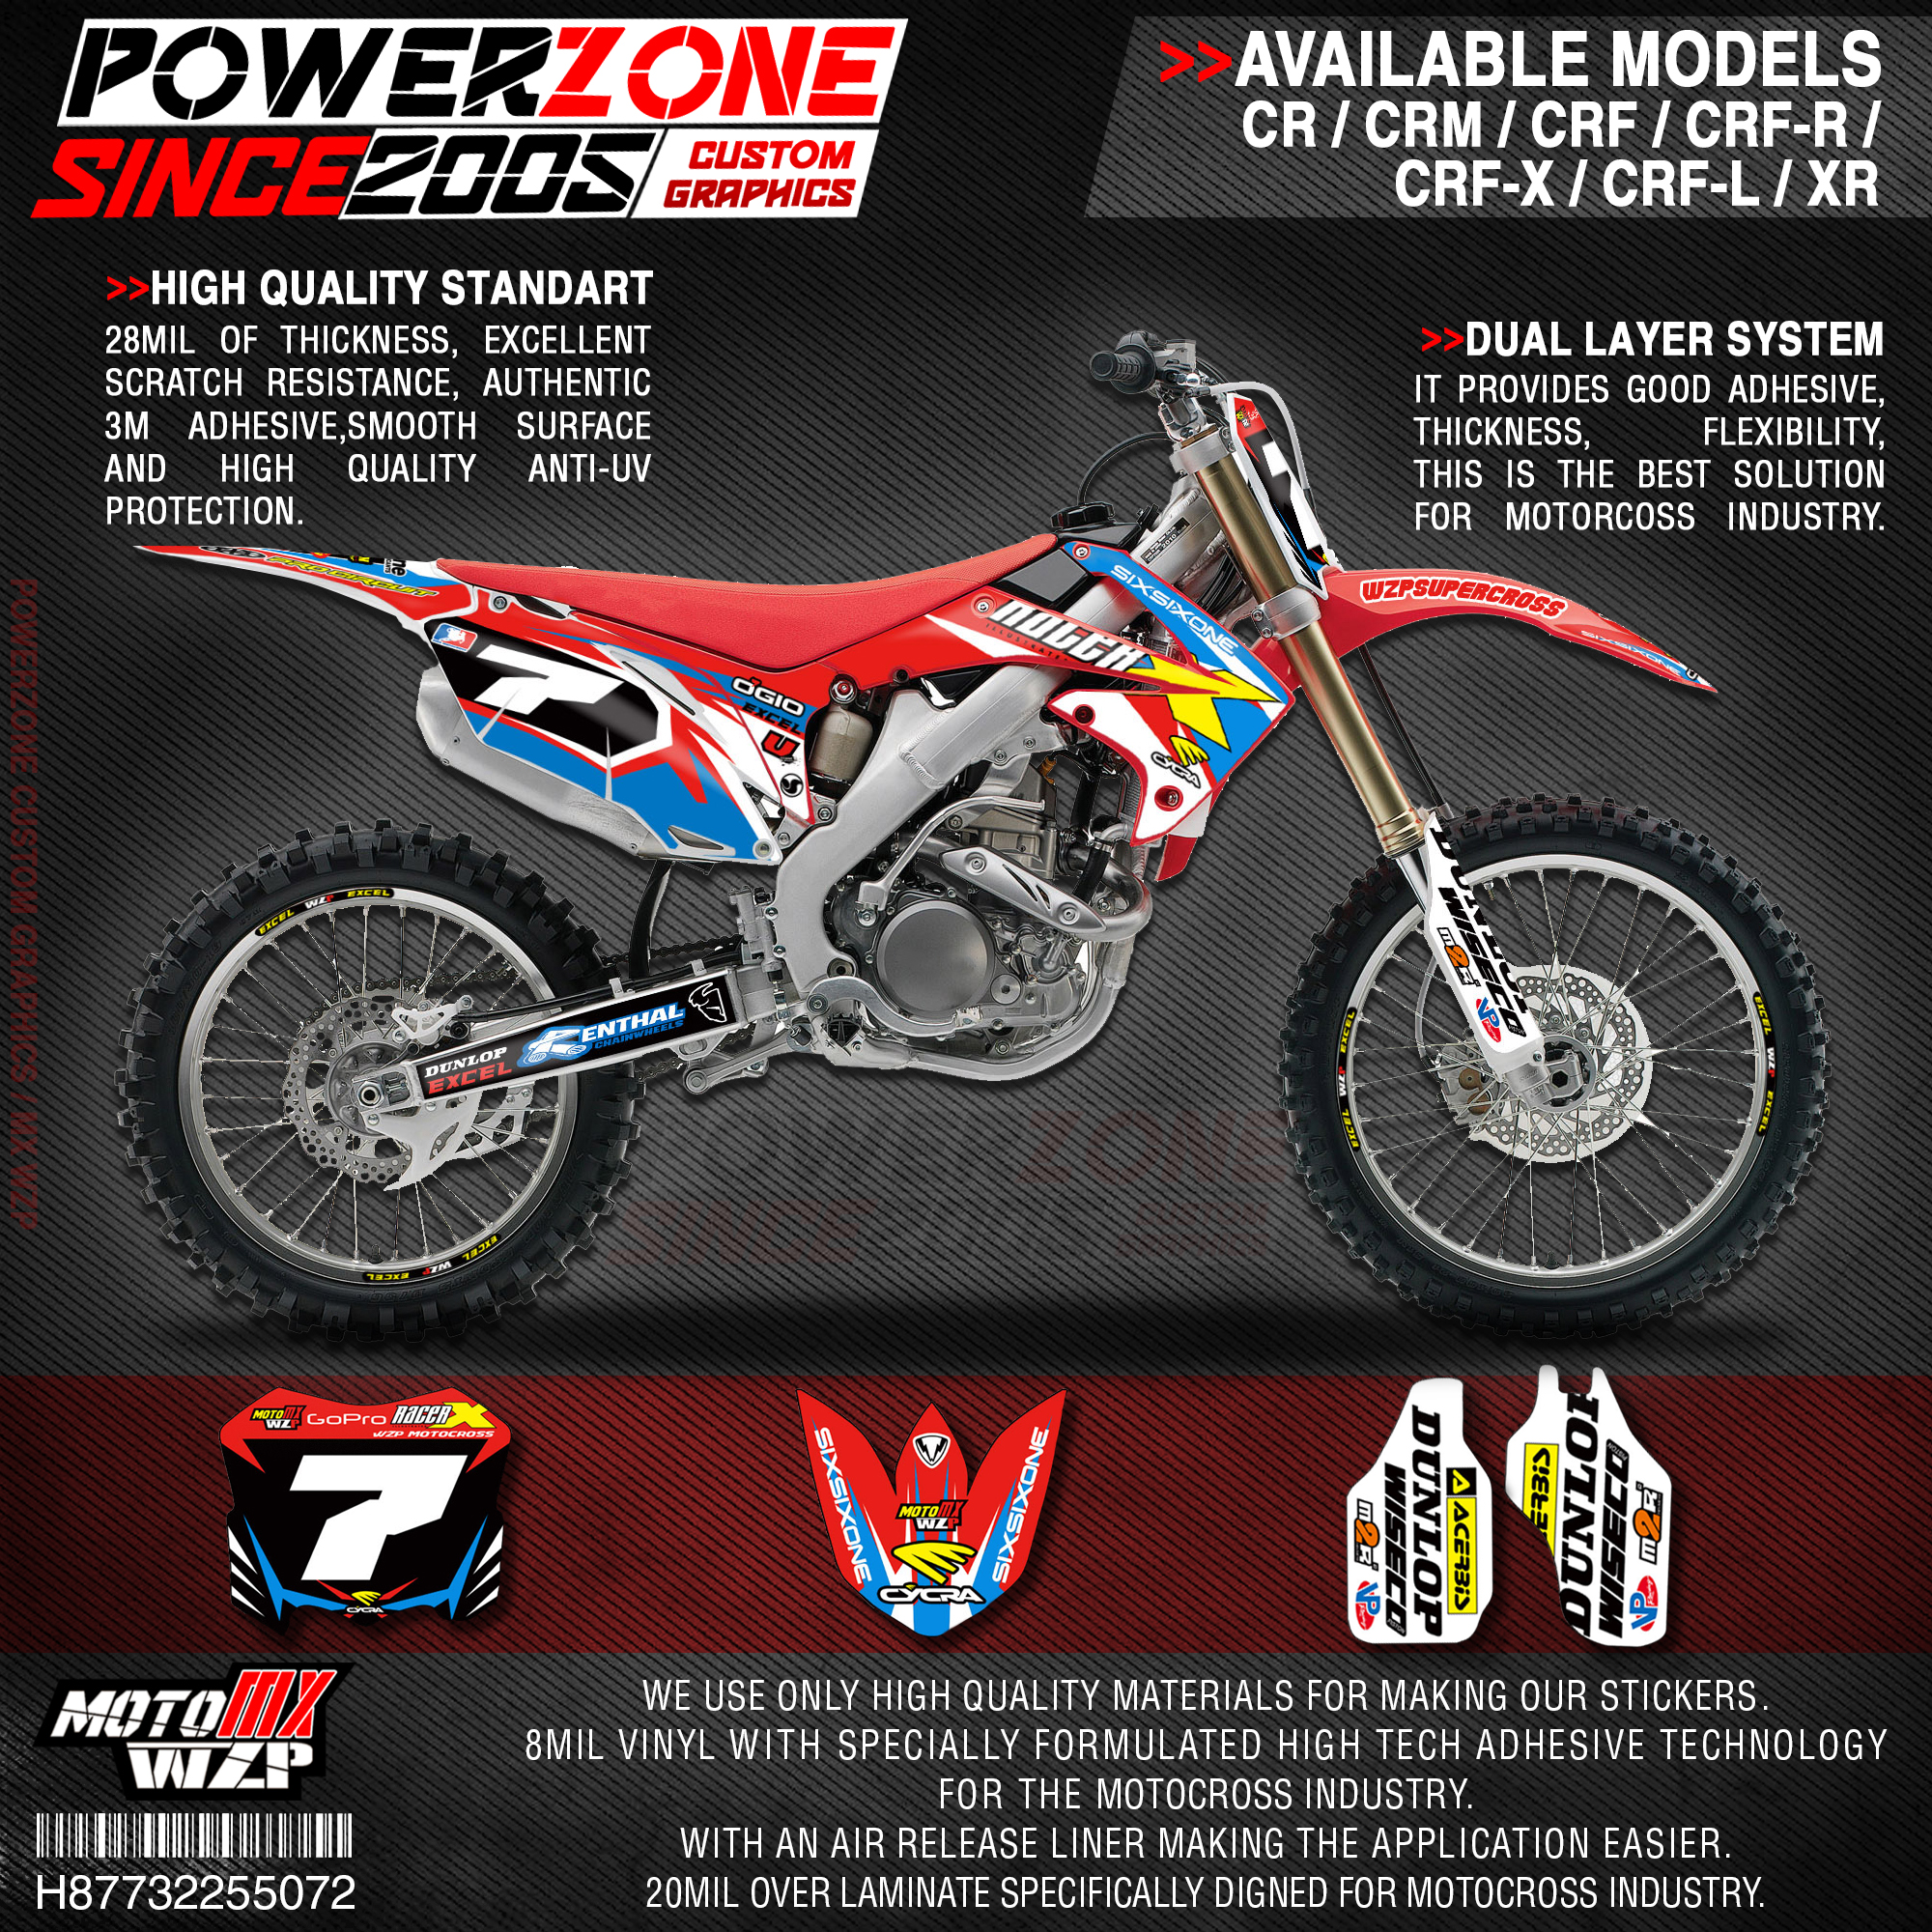 PowerZone Custom Team Graphics Backgrounds Decals 3M Stickers Kit For HONDA CRF250R 2010-2013 CRF450R 2009-2012 072